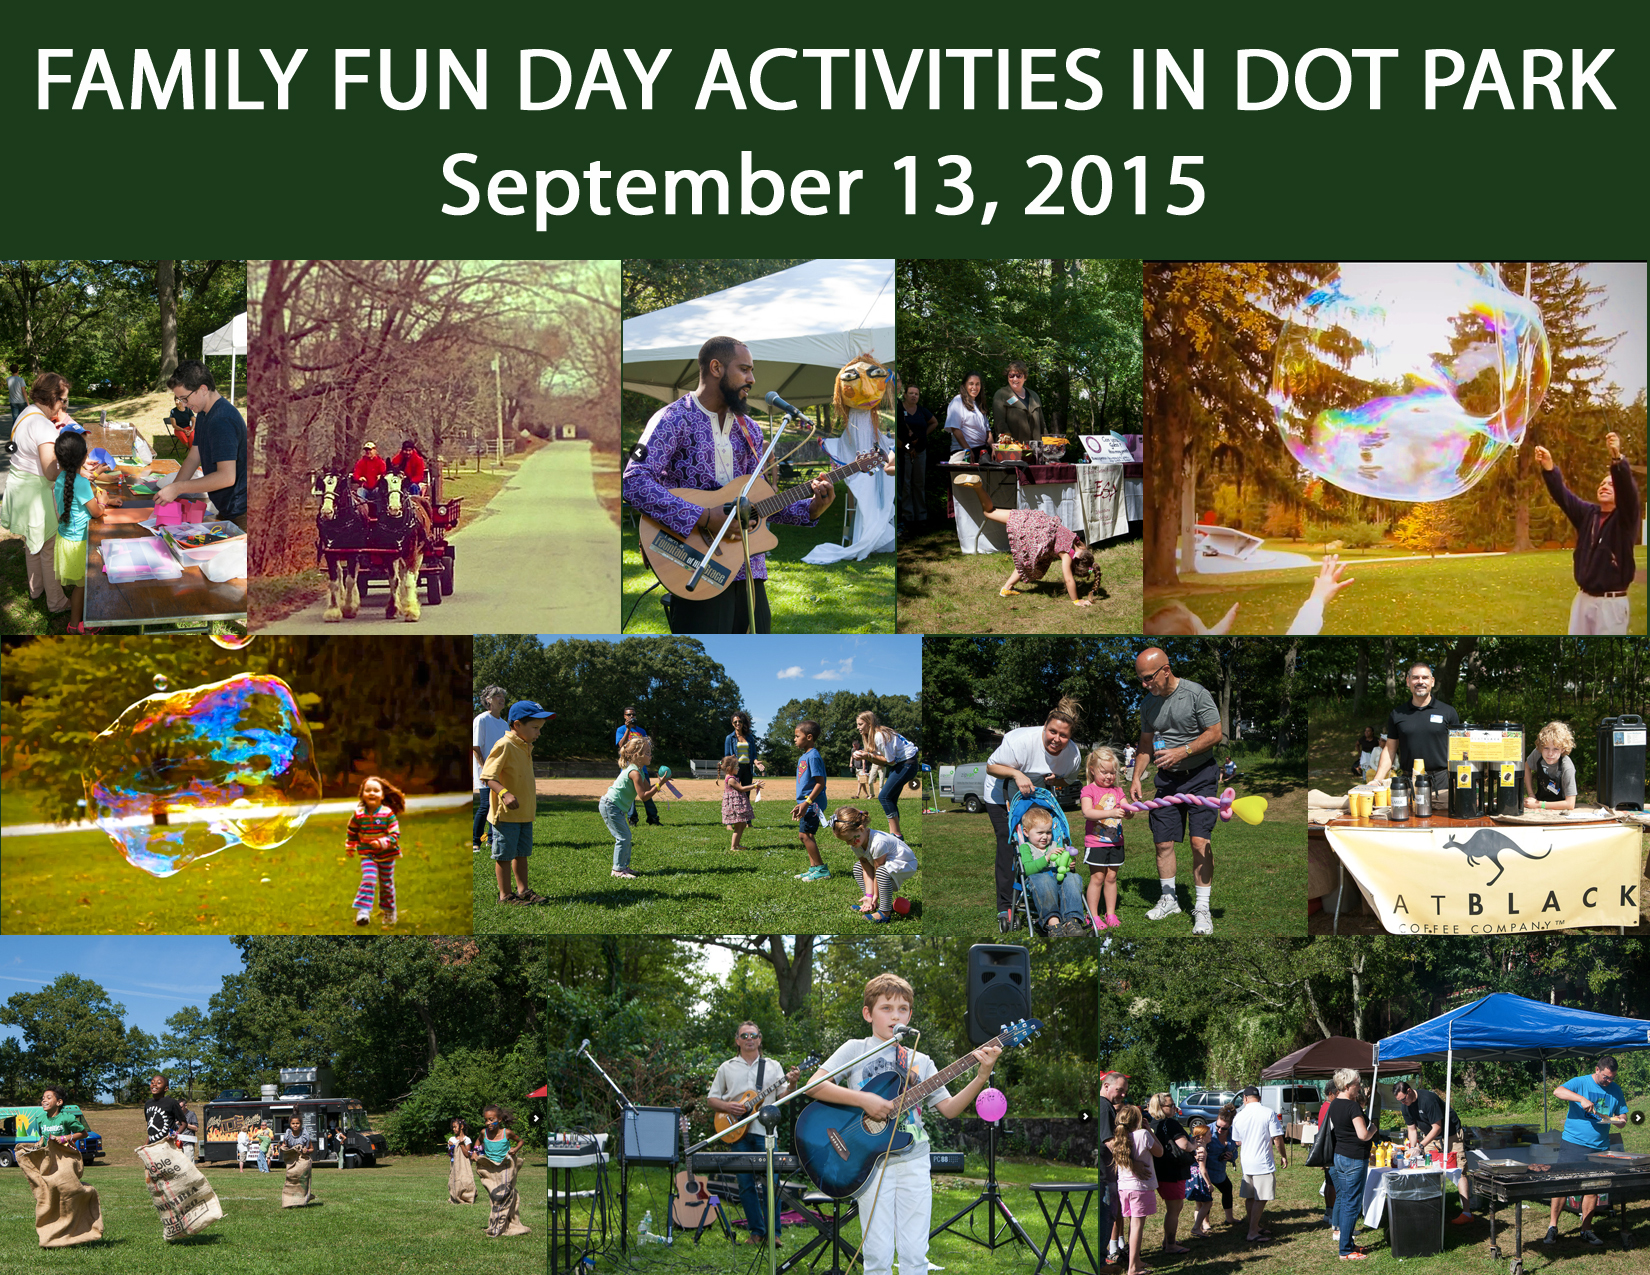 2-FAMILY FUN DAY ACTIVITIES IN DOT PARK-2015